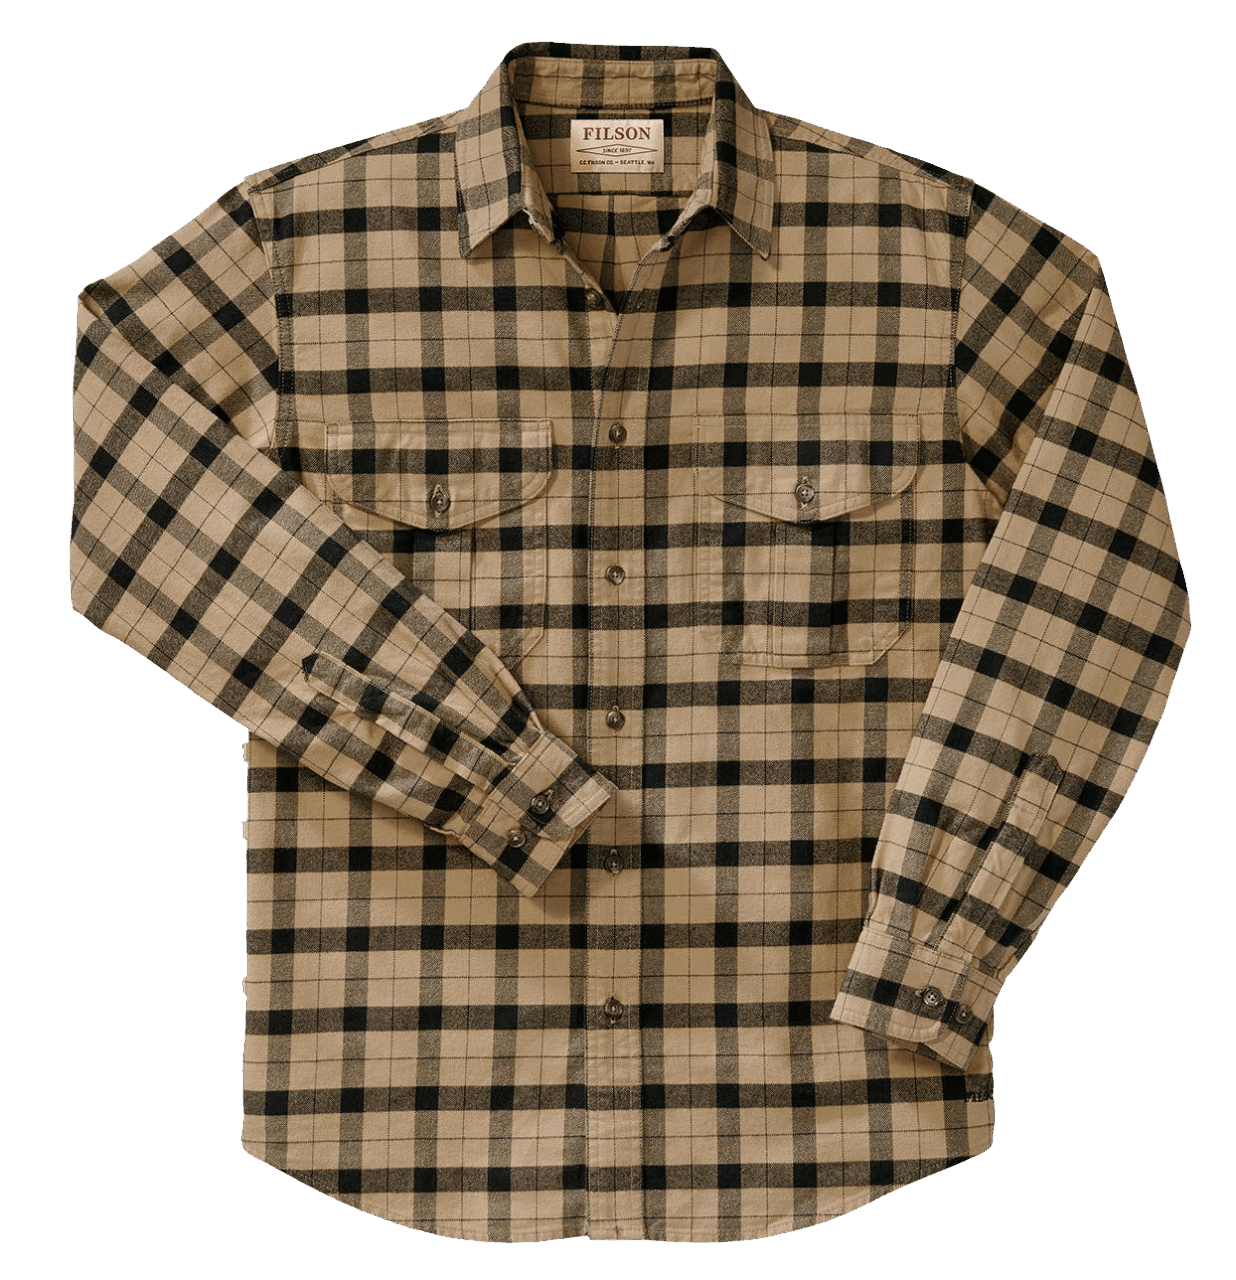 Filson Alaskan Guide Shirt camel-black